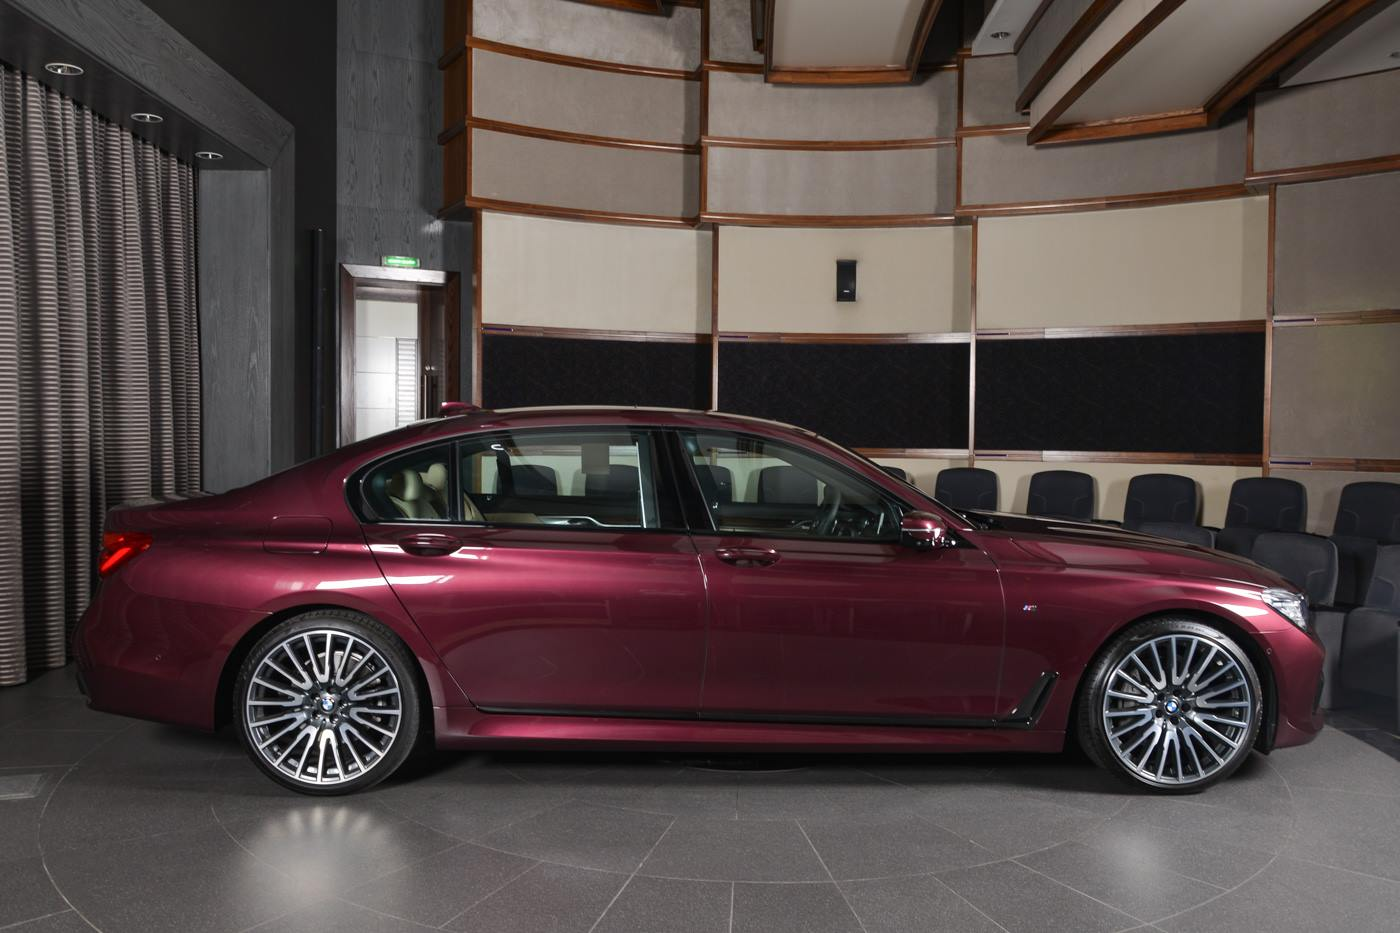 Auto Paint Colors >> BMW 740Li in Individual Wildberry Paint Looks Juicy - autoevolution